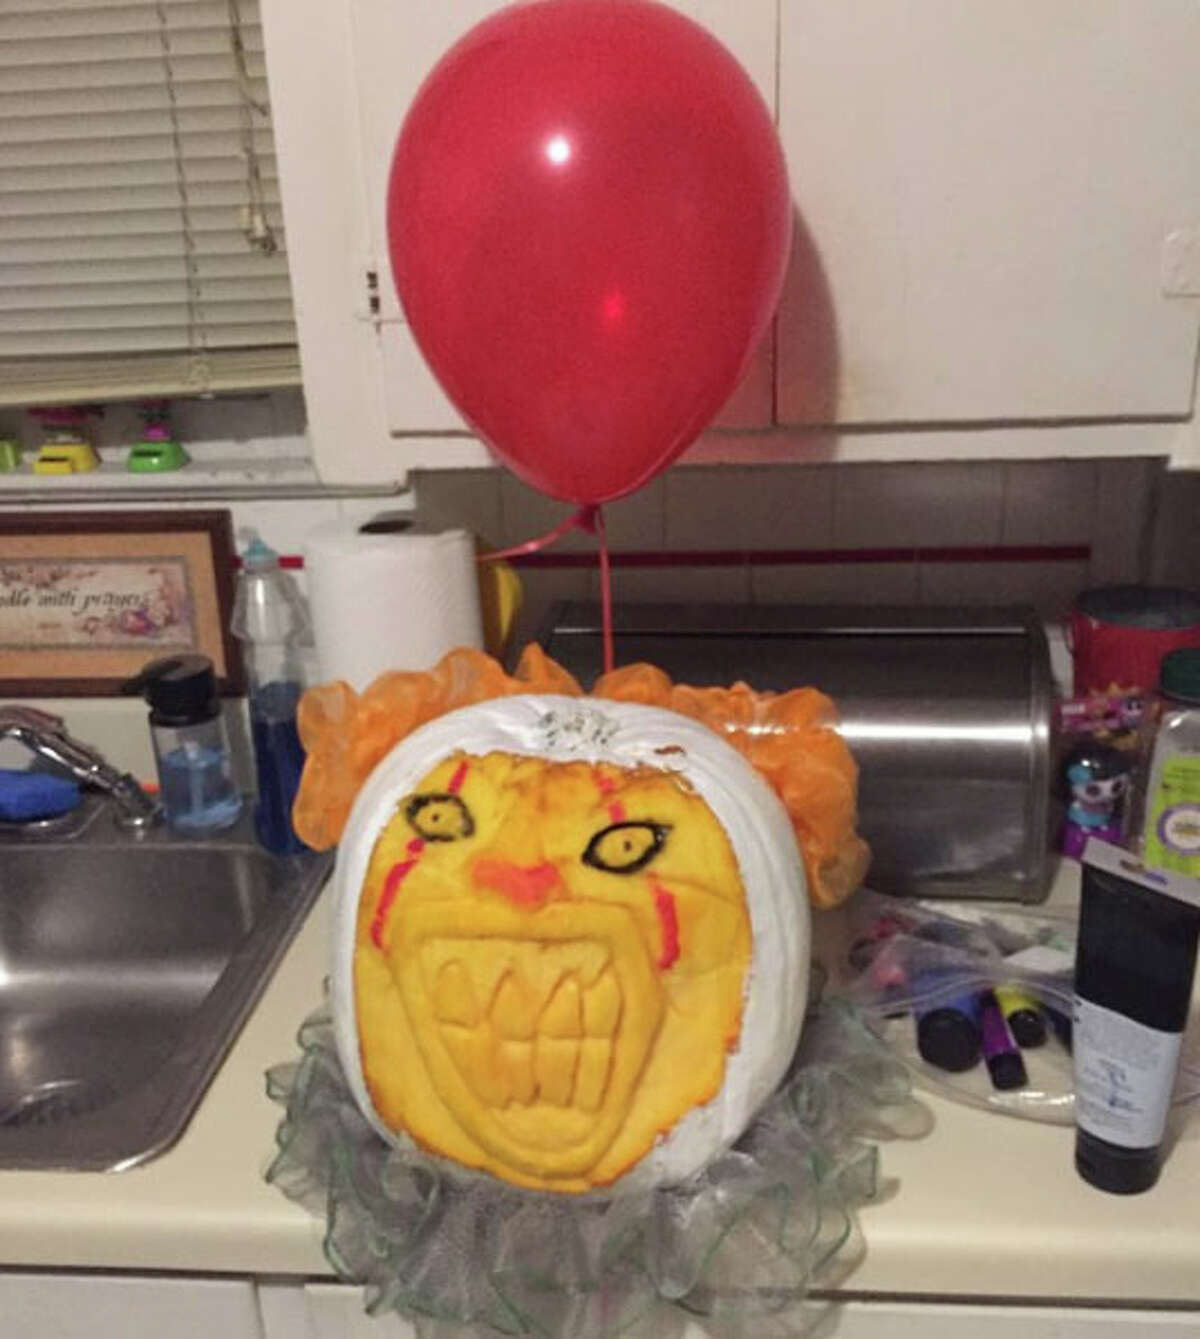 From frightening clowns to super heroes and other twisted, haunting creations, readers shared their best, spookiest designs in the 2017 San Antonio Express-News/mySA.com Pumpkin Carving Contest.